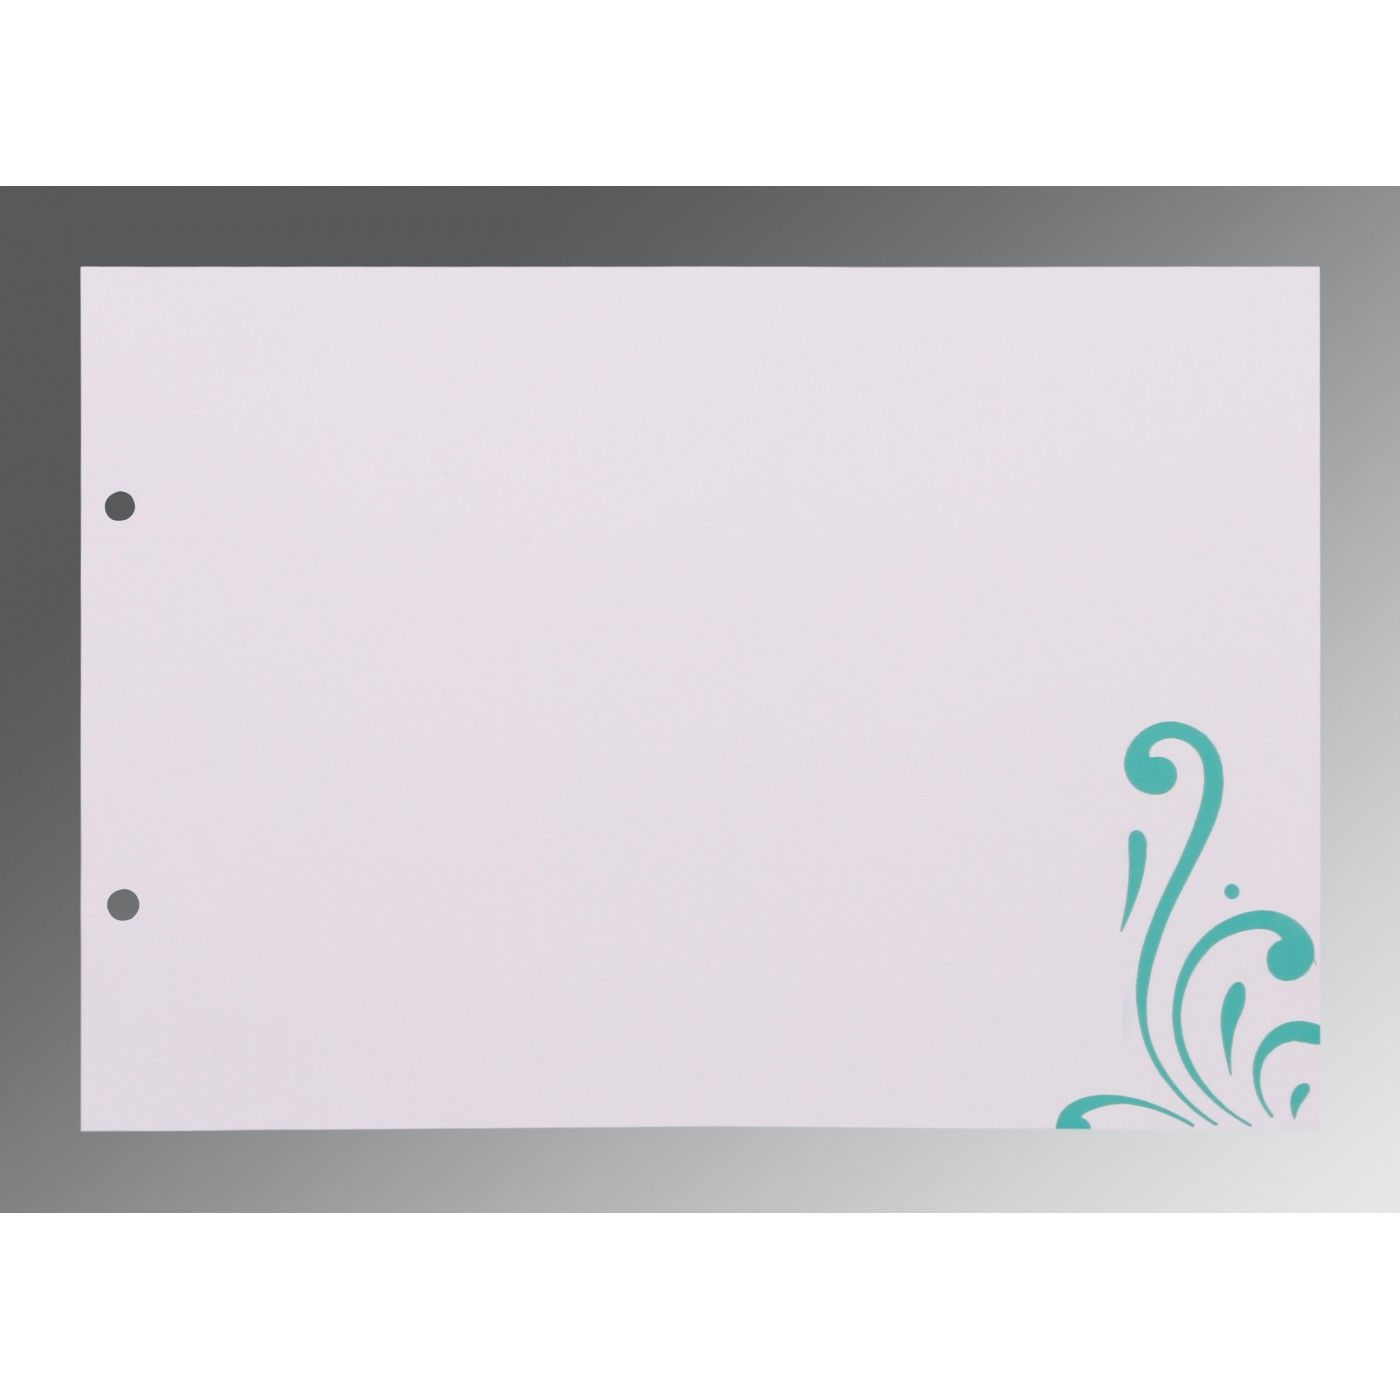 TURQUOISE SHIMMERY SCREEN PRINTED WEDDING CARD : CD-8223H - IndianWeddingCards